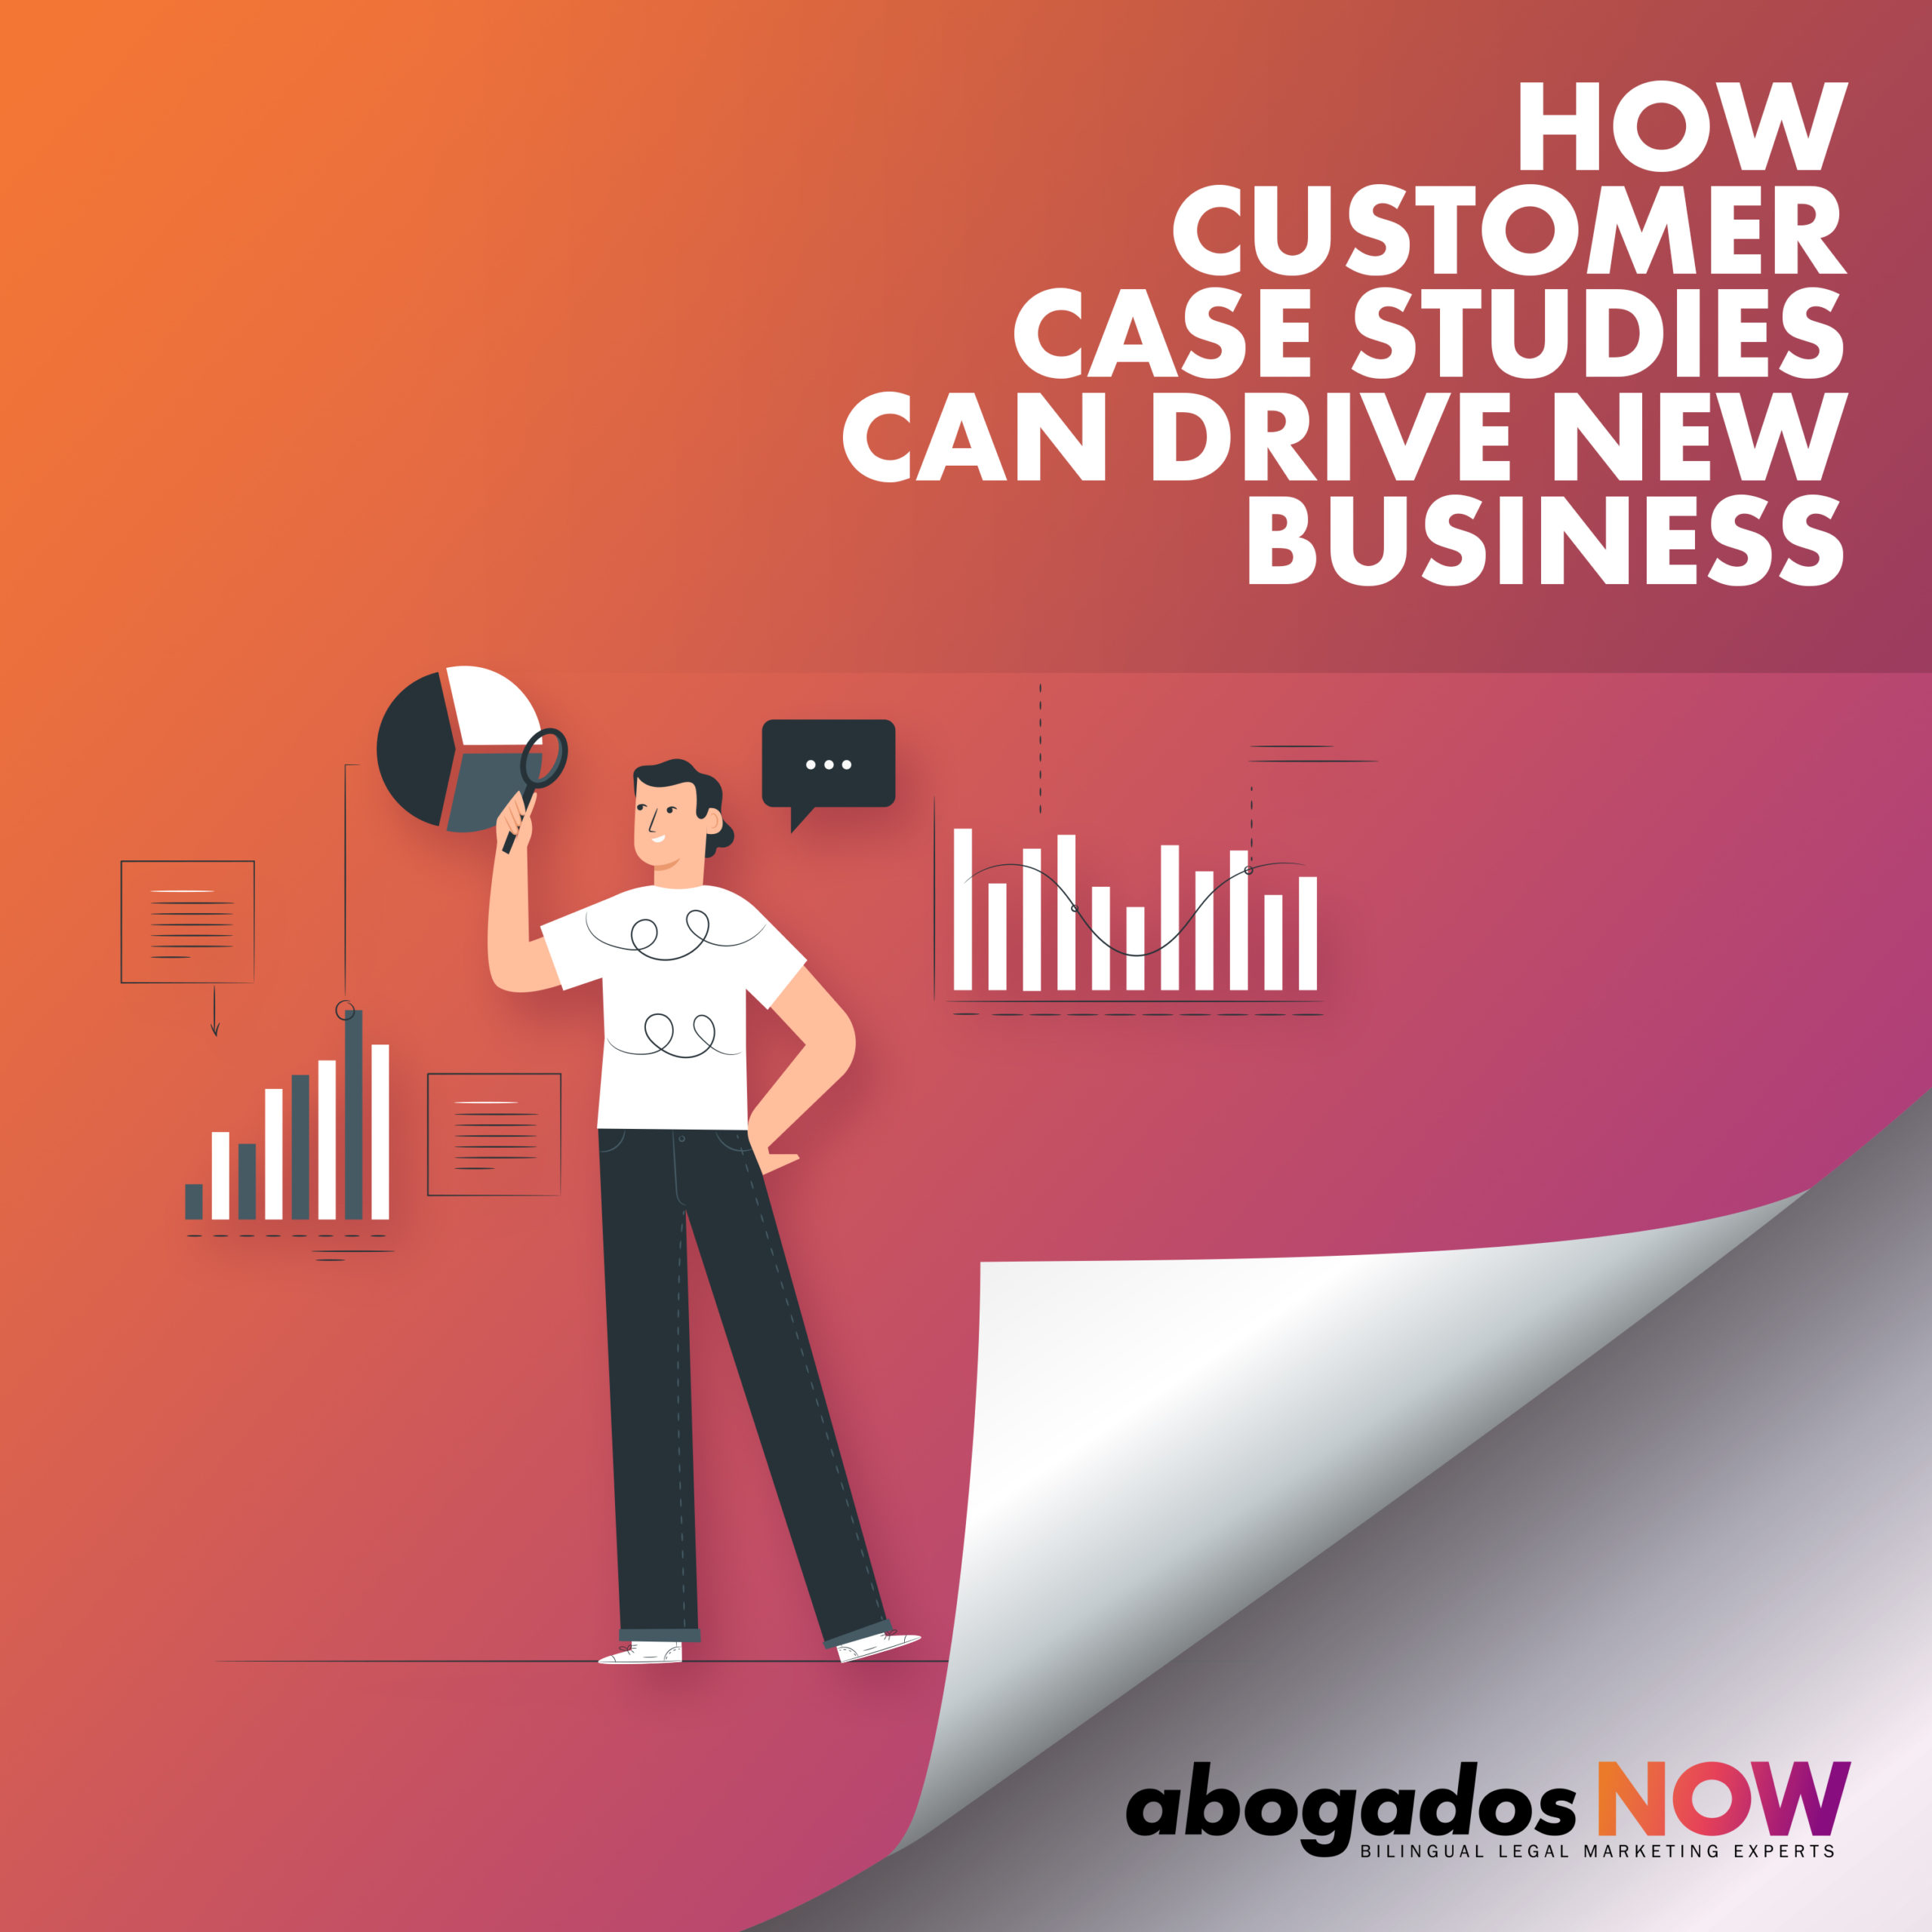 How Customer Case Studies Can Be Used to Drive New Business